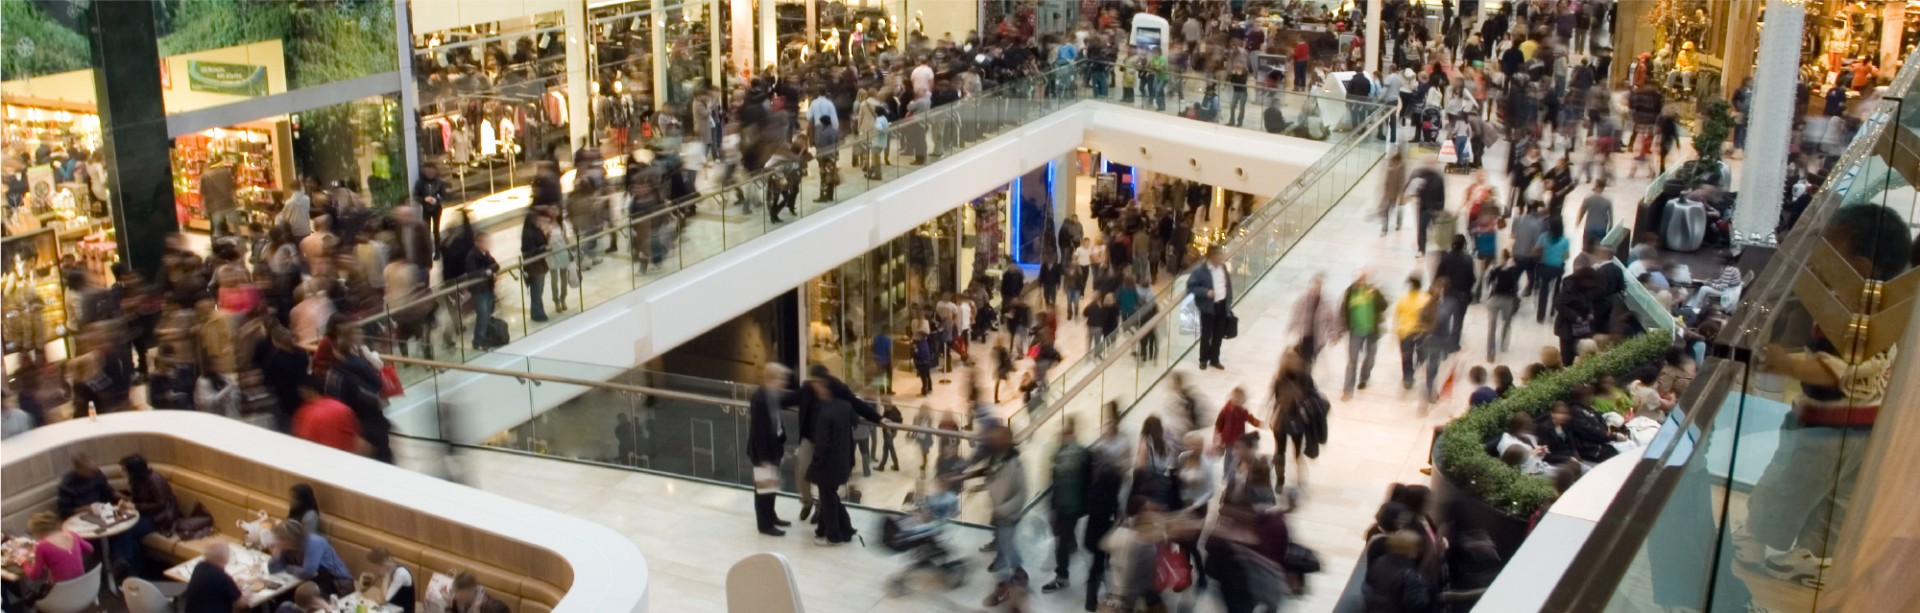 a crowded shopping centre See a rich collection of stock images, vectors, or photos for crowded shopping mall you can buy on shutterstock explore quality images, photos, art & more.